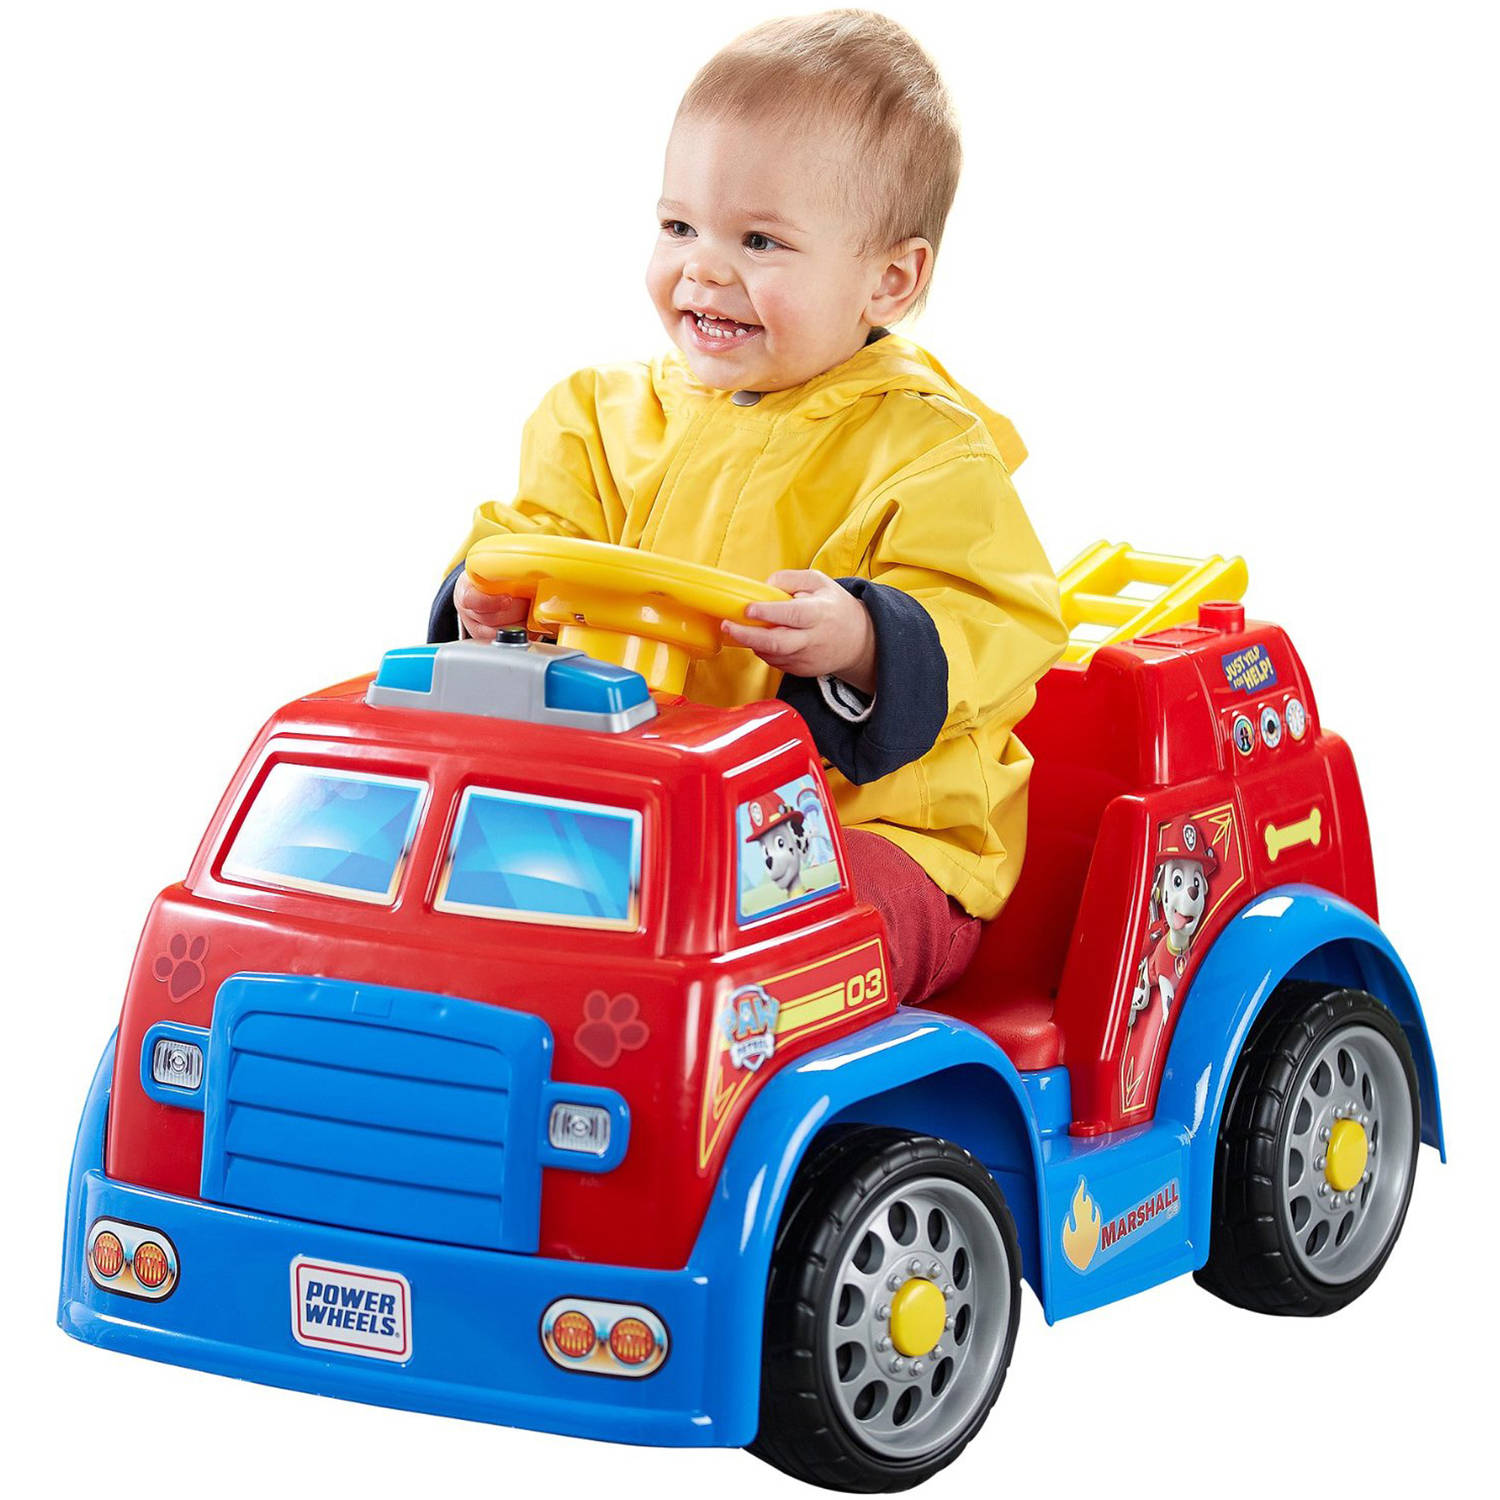 Fisher-Price Power Wheels PAW Patrol Fire Truck